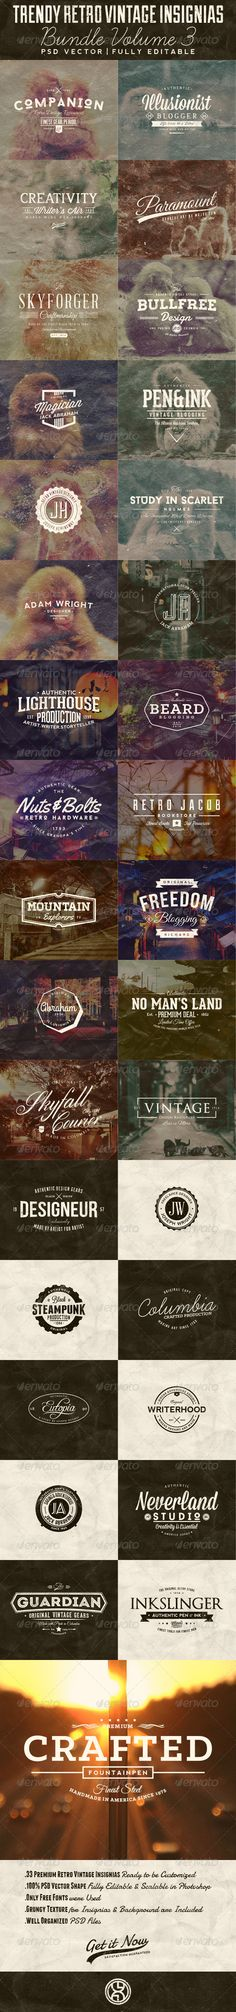 Web Elements - 33 Trendy Retro Vintage Insignias Bundle Volume 3 | GraphicRiver